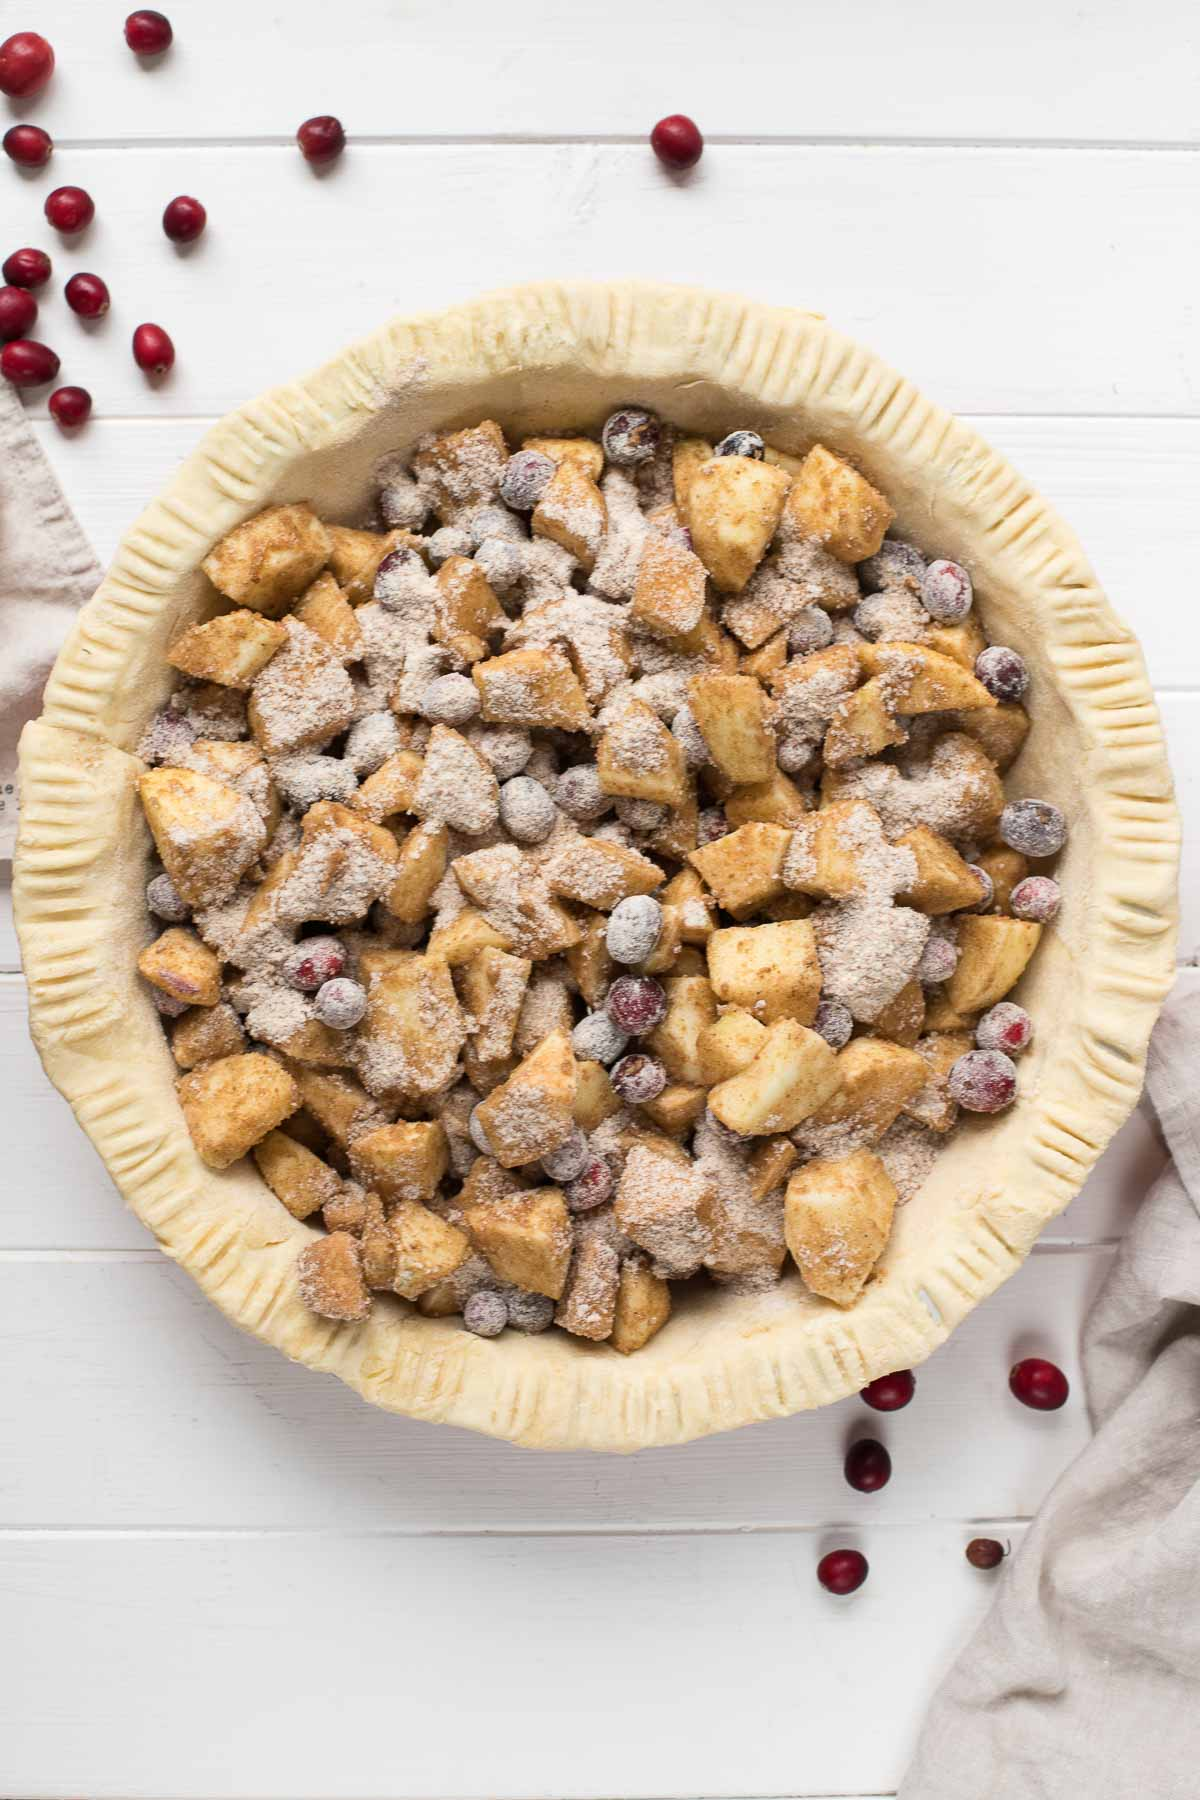 Vor dem backen - Classic Apple Pie with Cranberries